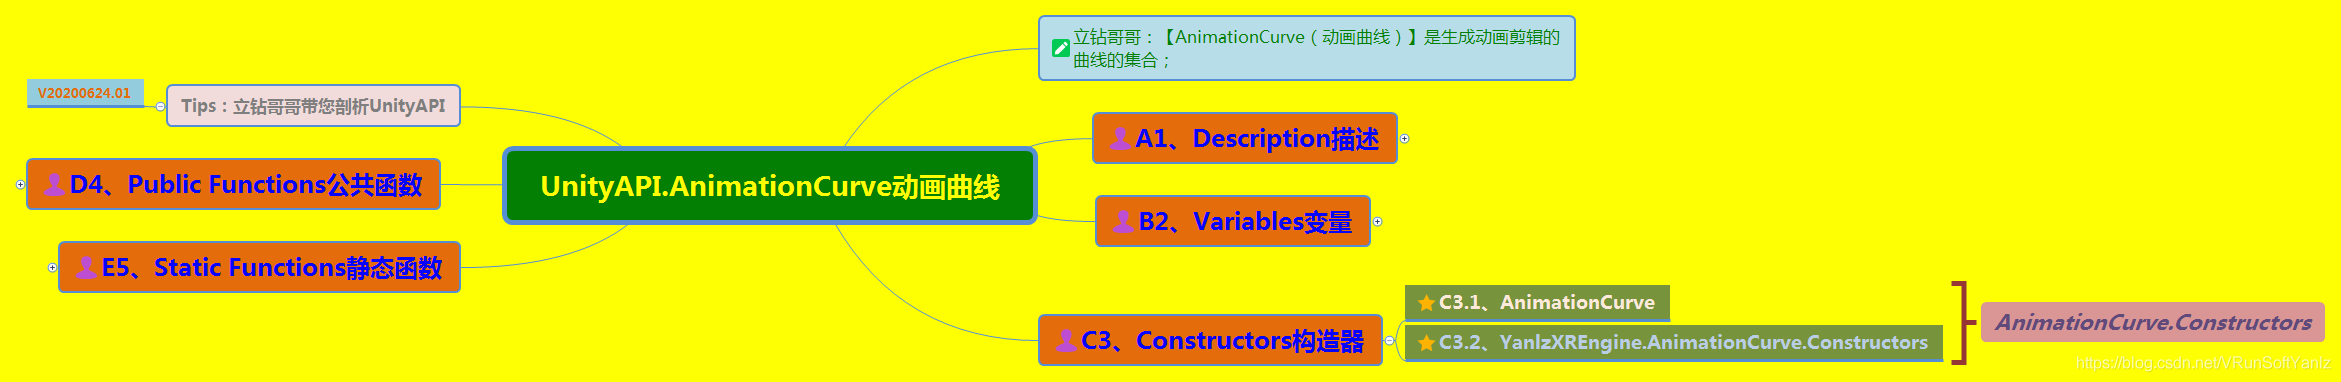 《UnityAPI.AnimationCurve动画曲线》(Yanlz+Unity+SteamVR+云技术+5G+AI+VR云游戏+AnimationCurve+Addkey+立钻哥哥++OK++)VRunSoftYanlz的博客-